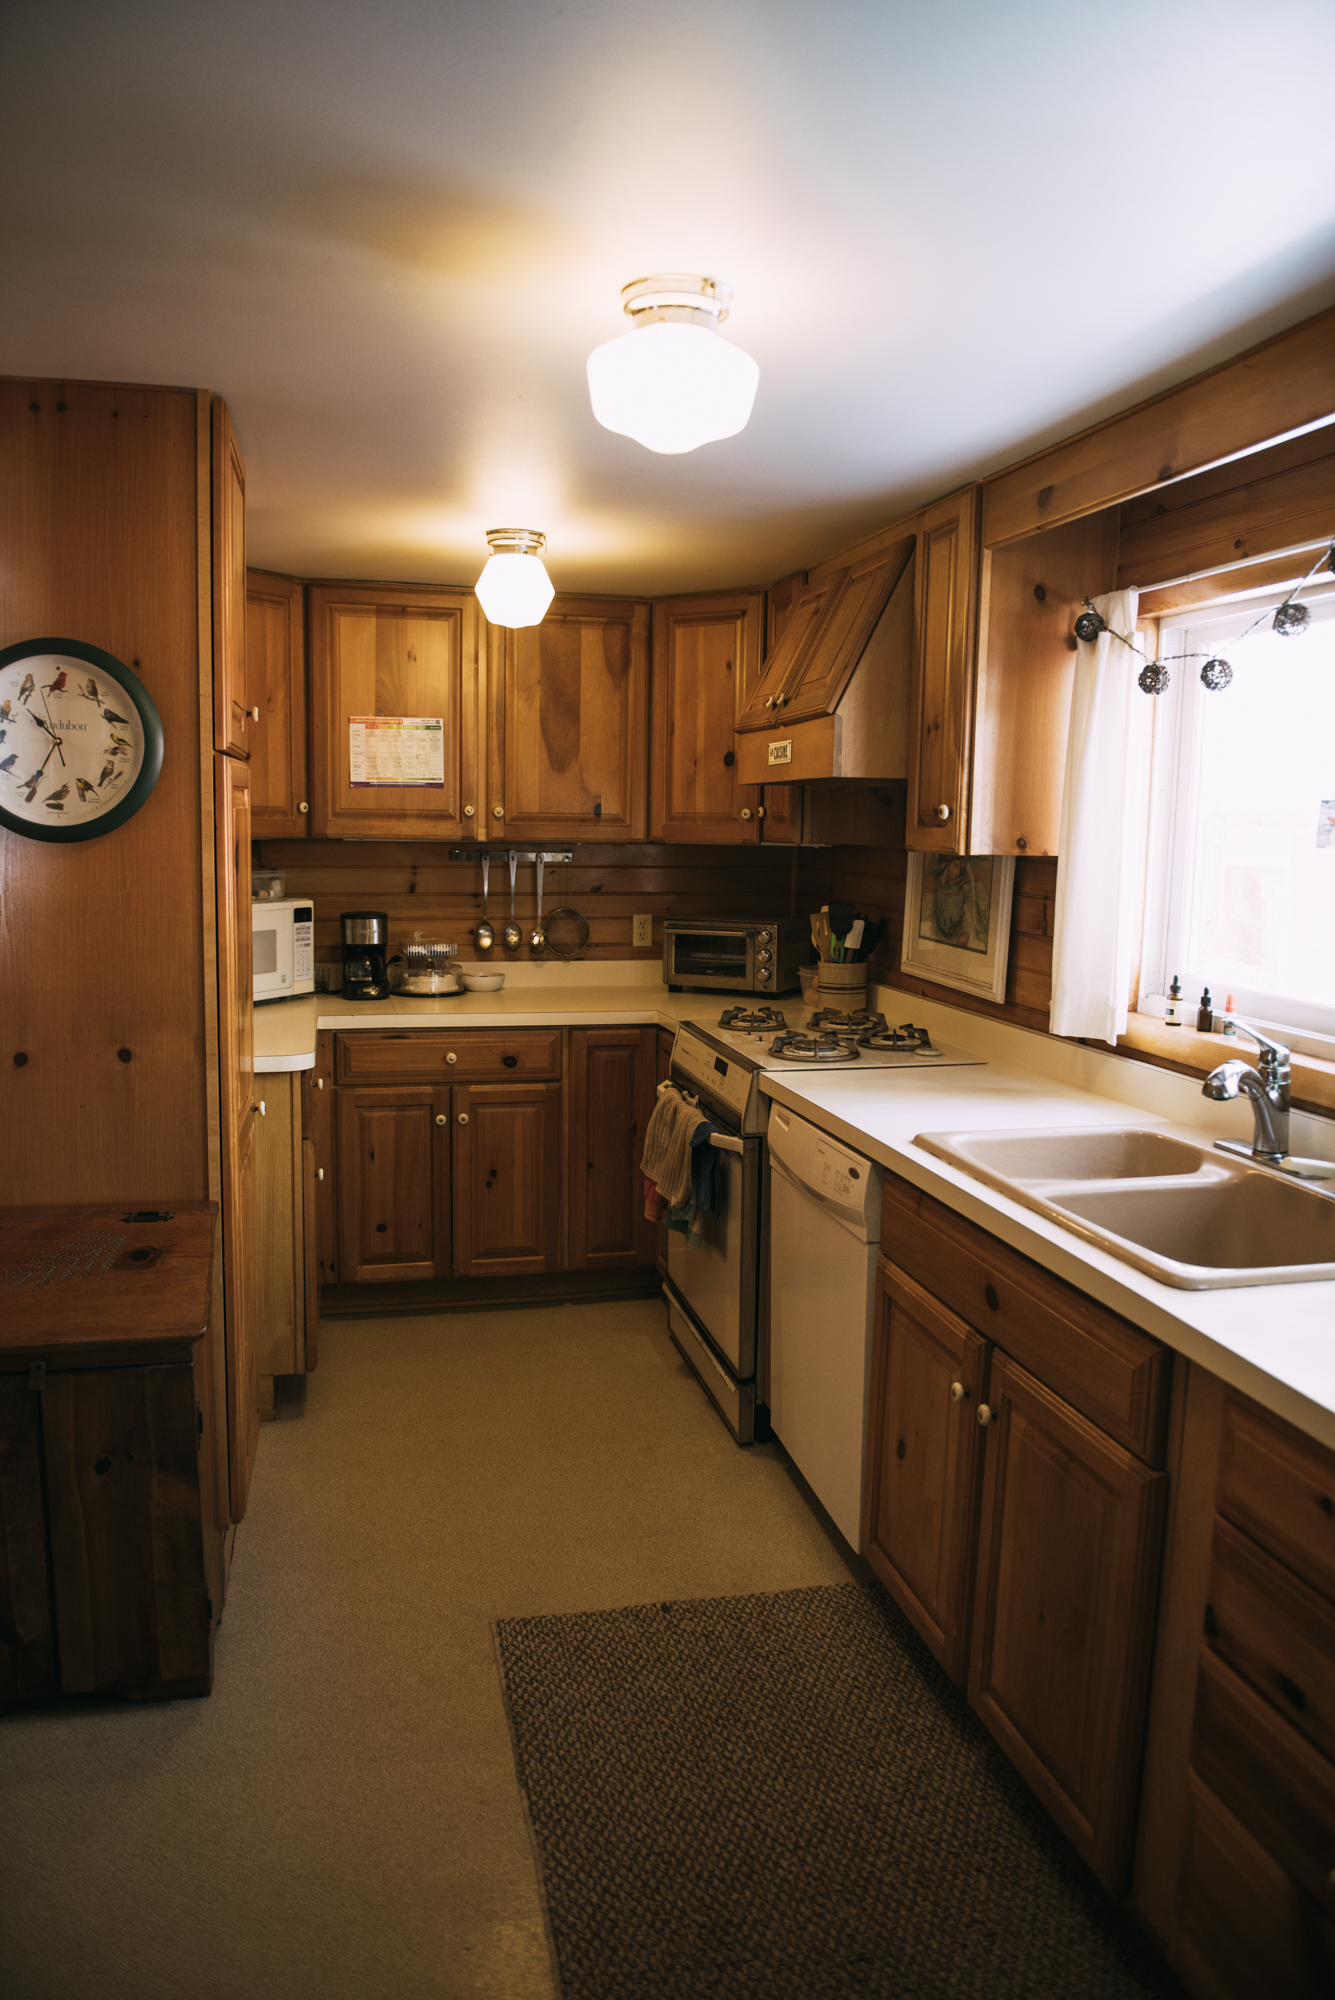 Black Bear cabin rental offers full kitchen and so much more.